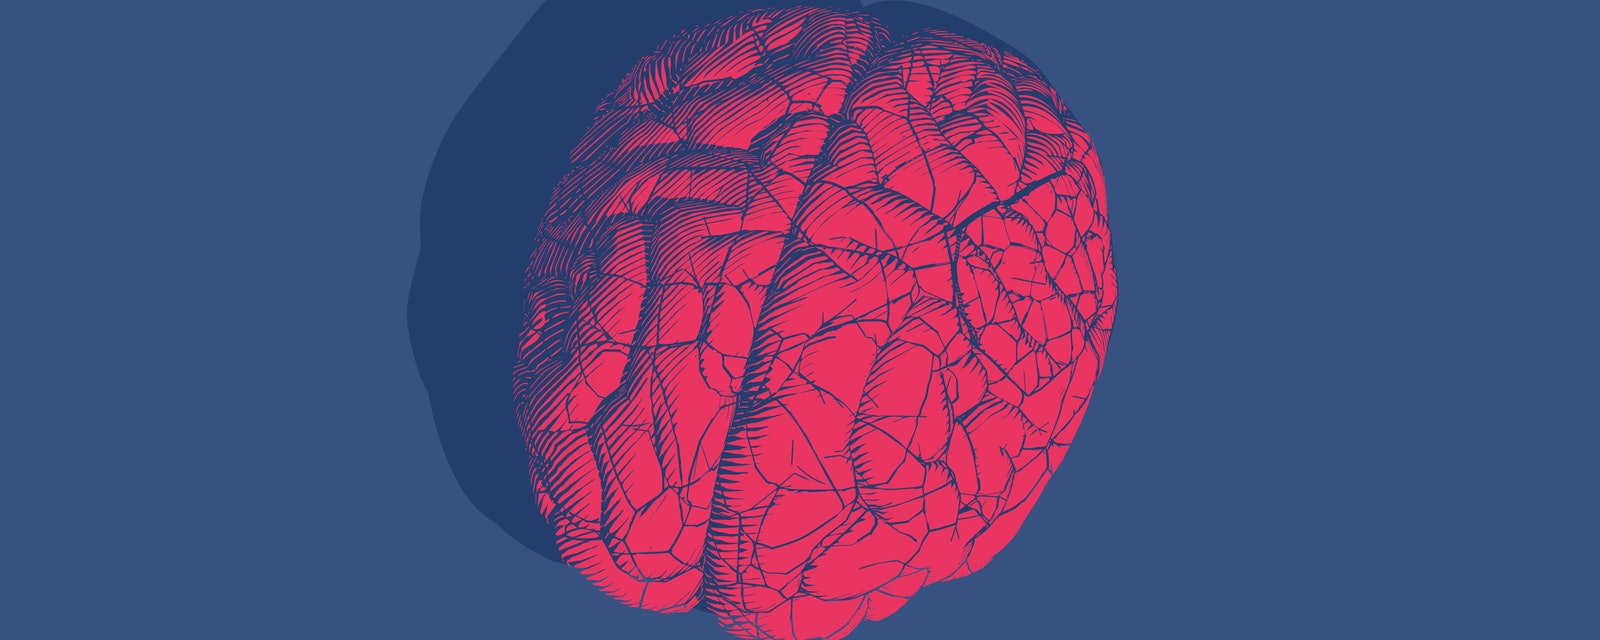 Bright red engraved vintage drawing cracked human brain glyph illustration style isolated on deep blue background